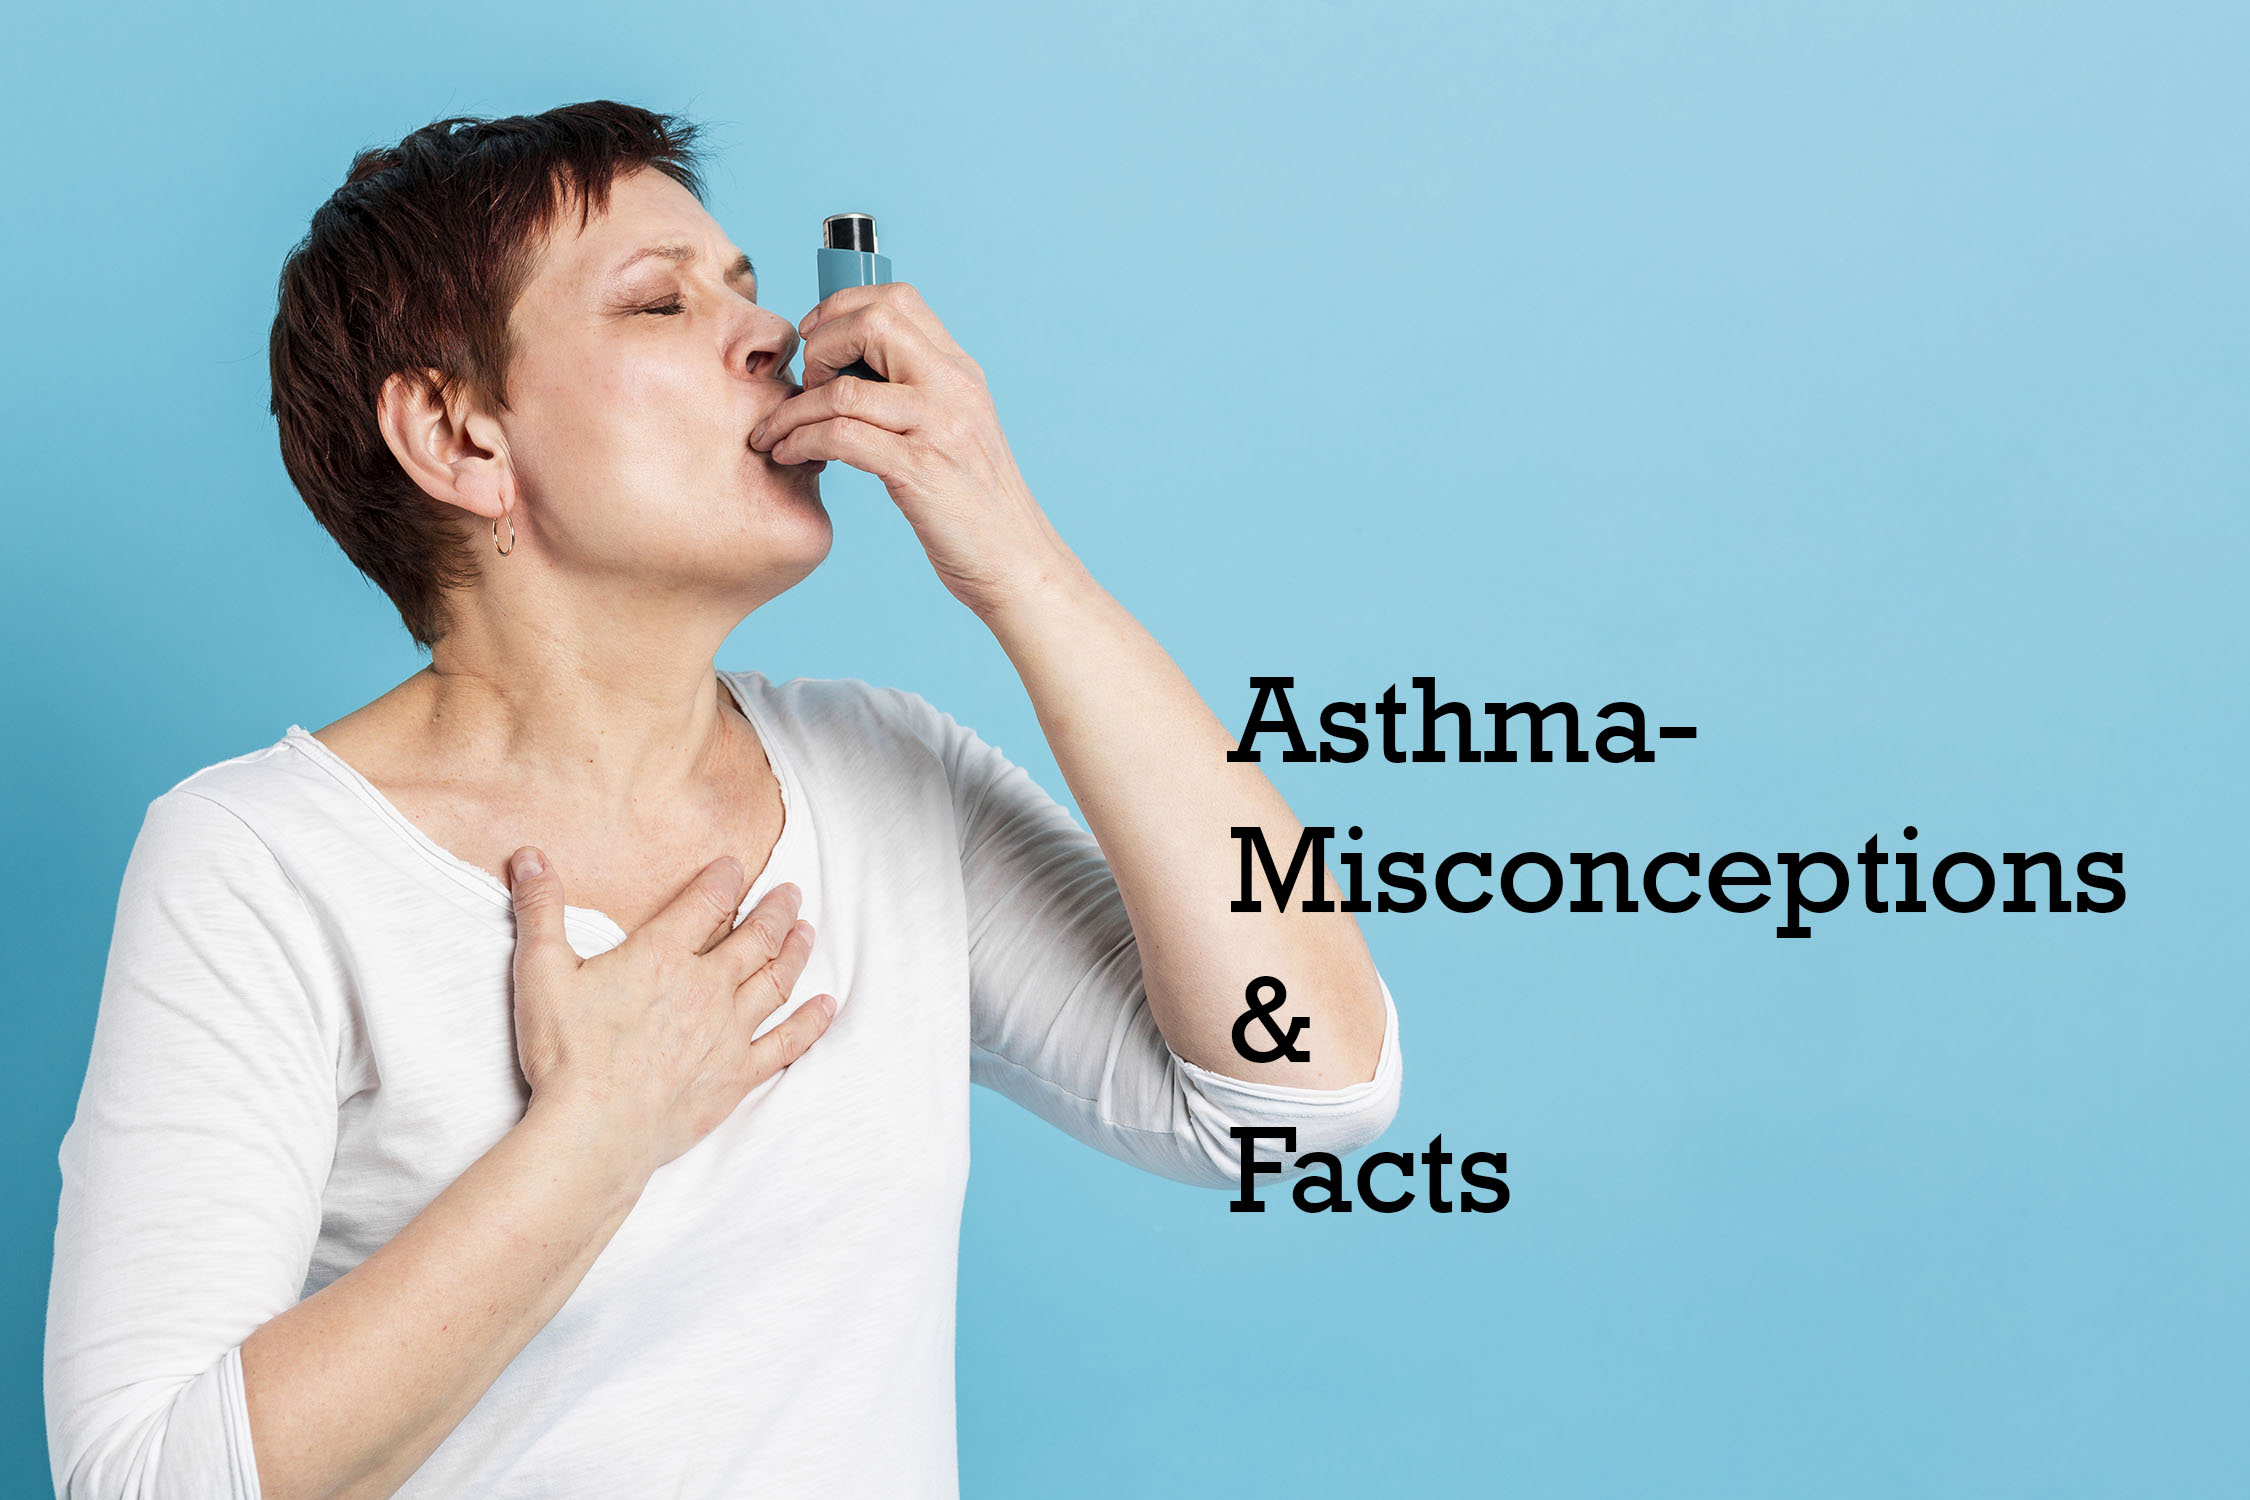 Asthma - Misconceptions & Facts